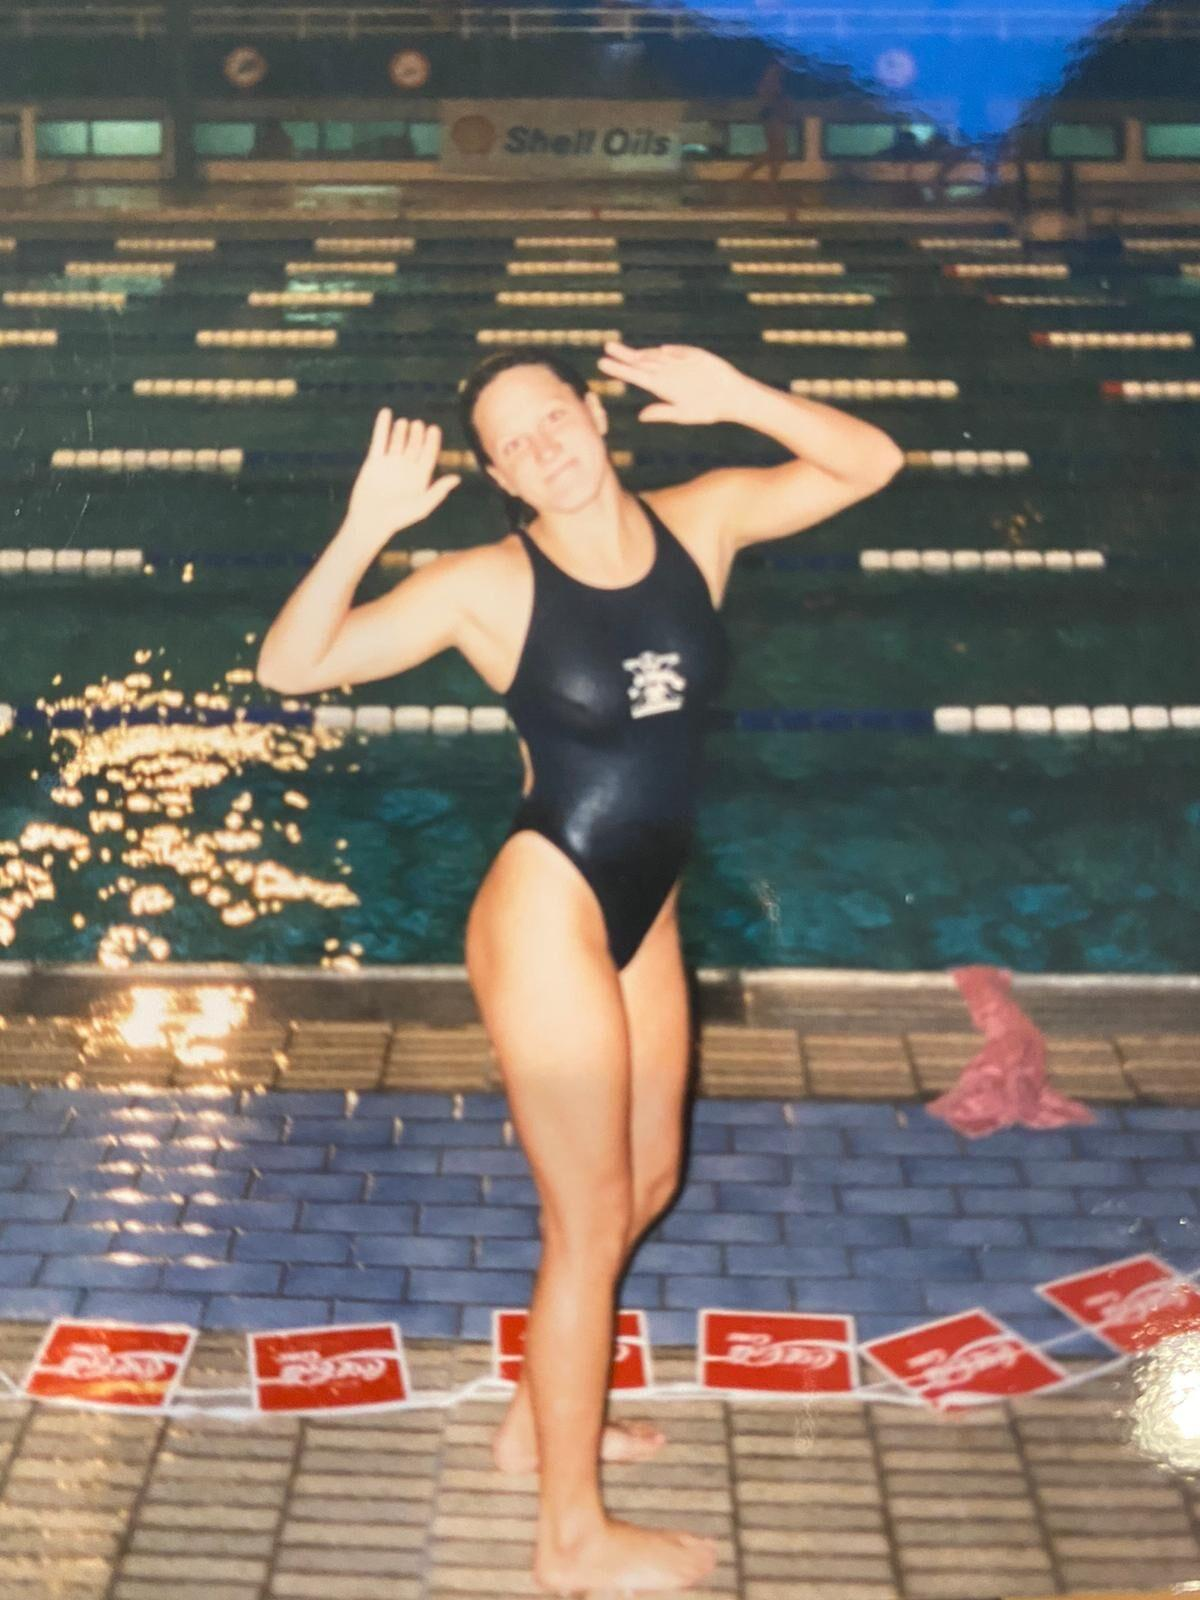 Former Team Guam swimmer Claudia Clement Lamparzyk lived by example, dead at 42